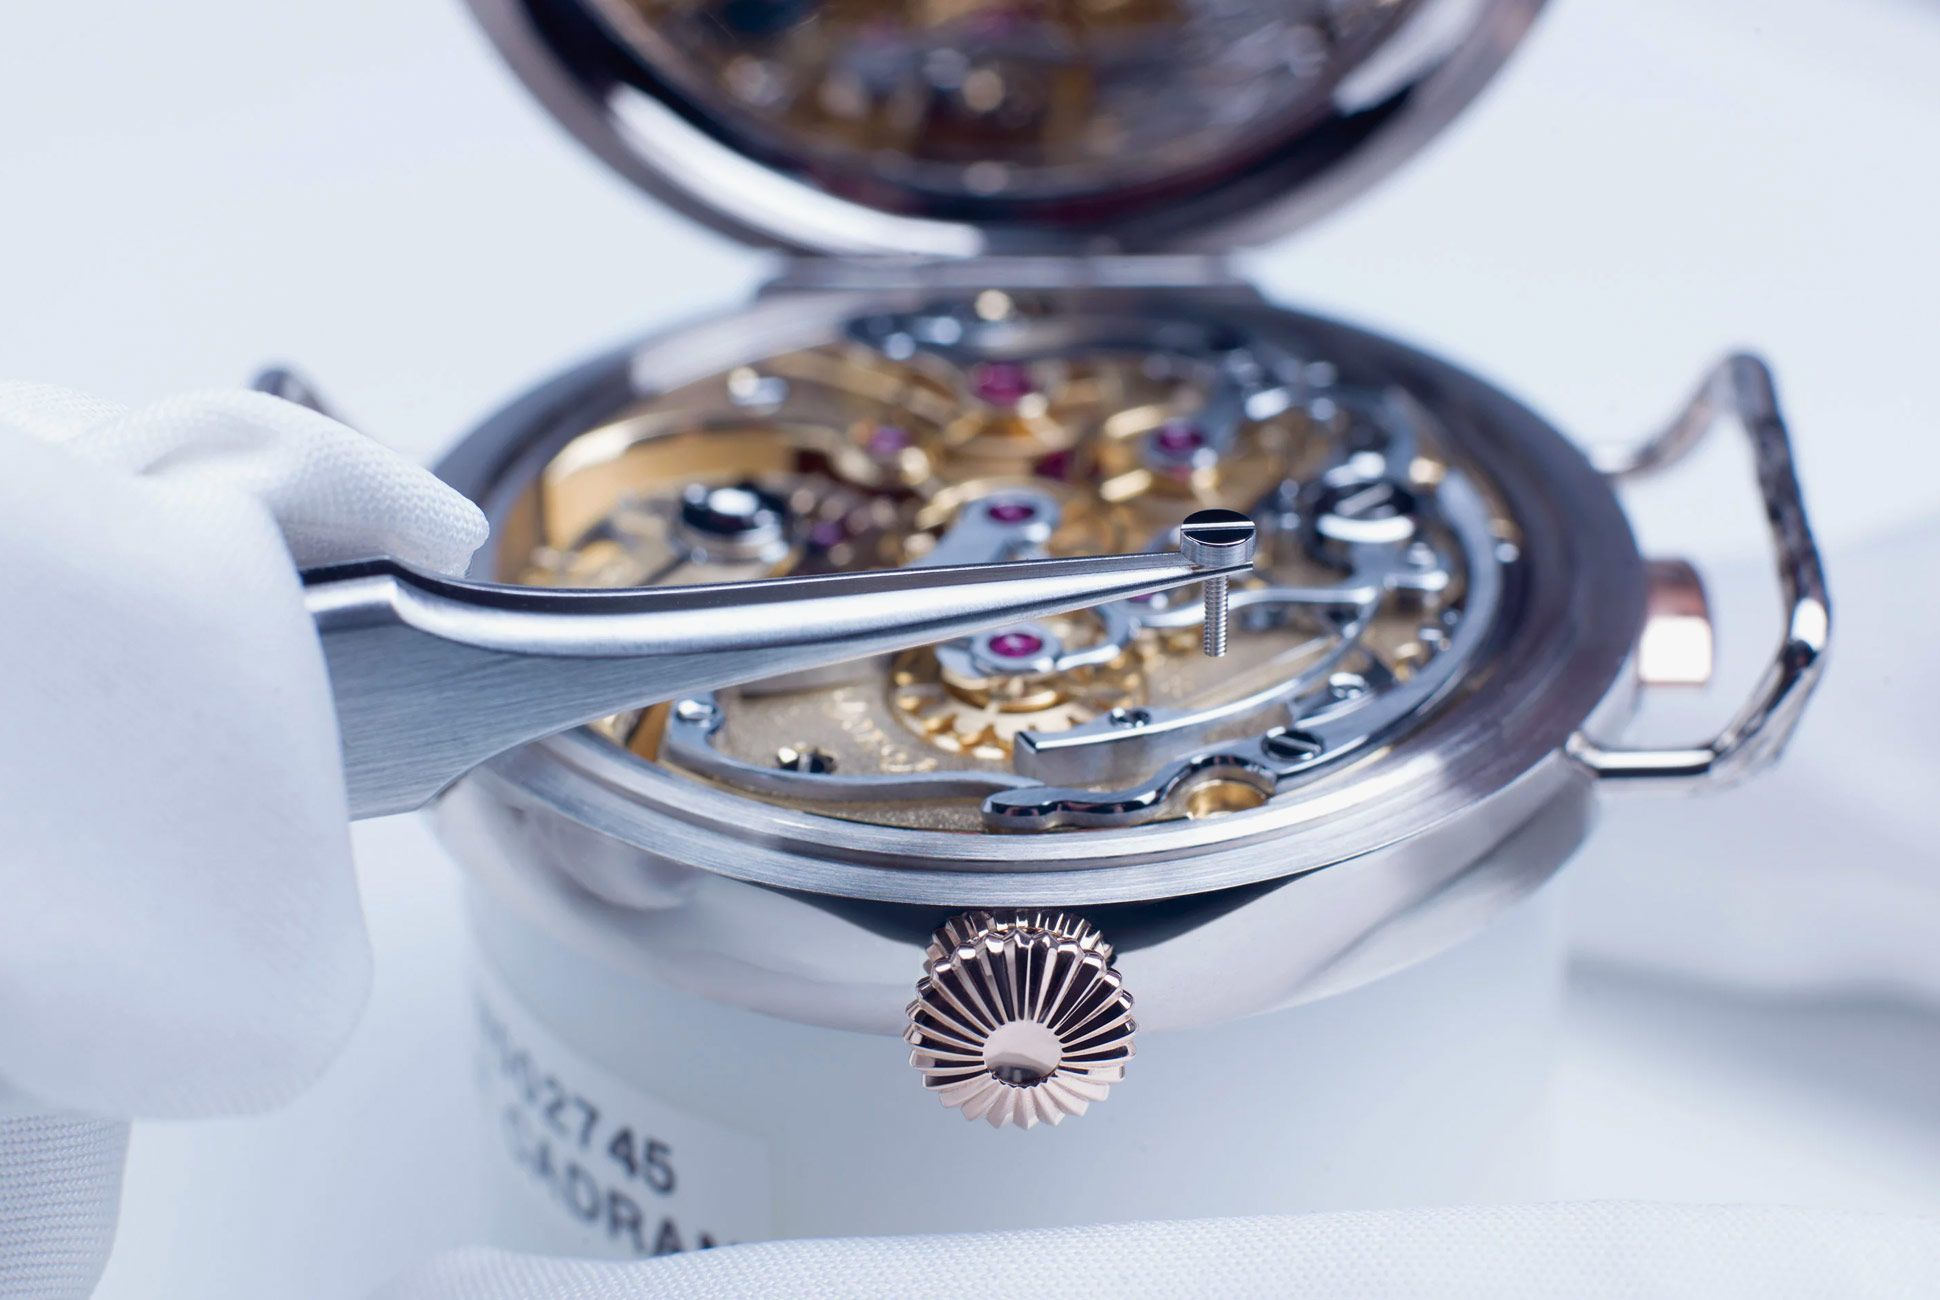 Omega-Chronograph-Limited-Edition-with-Original-Omega-Movement-gear-patrol-11